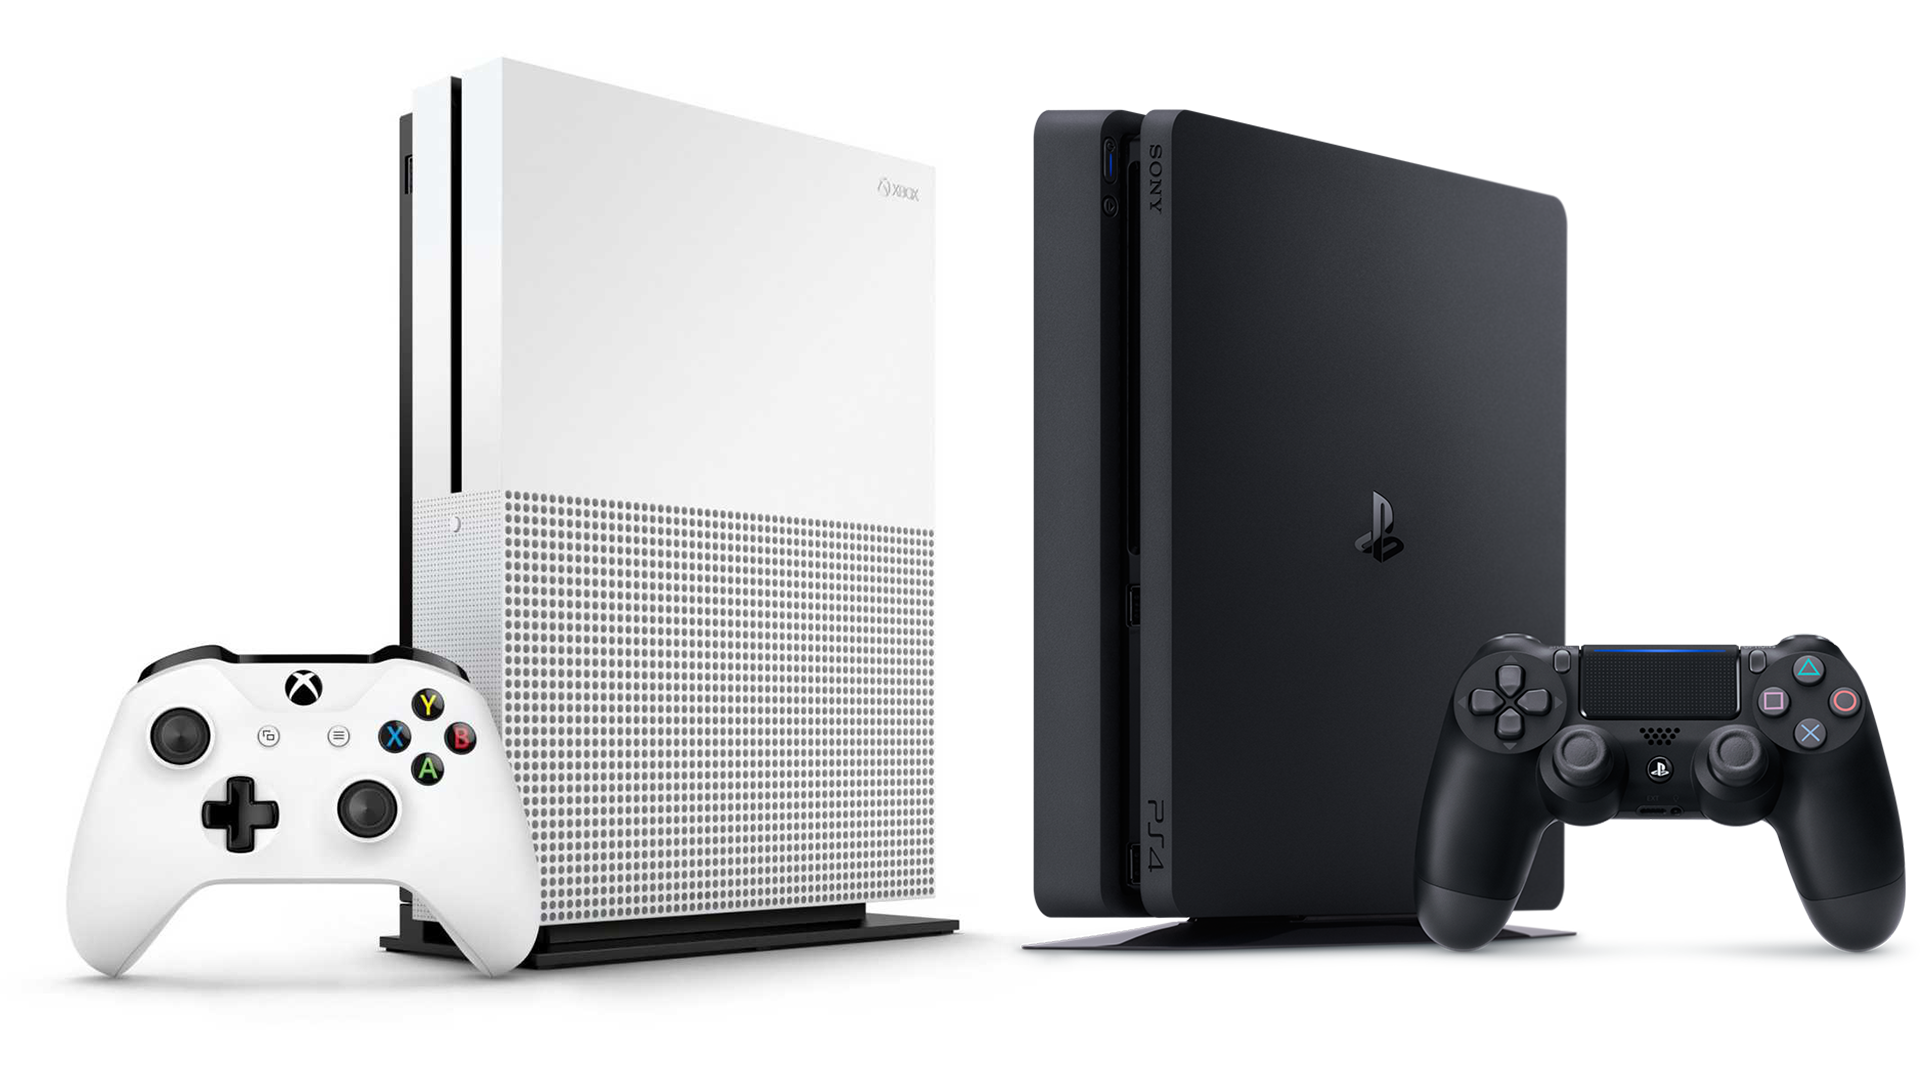 Gamestop Offering 175 Ps4 Slim Or Xbox One S With Trade In Deal